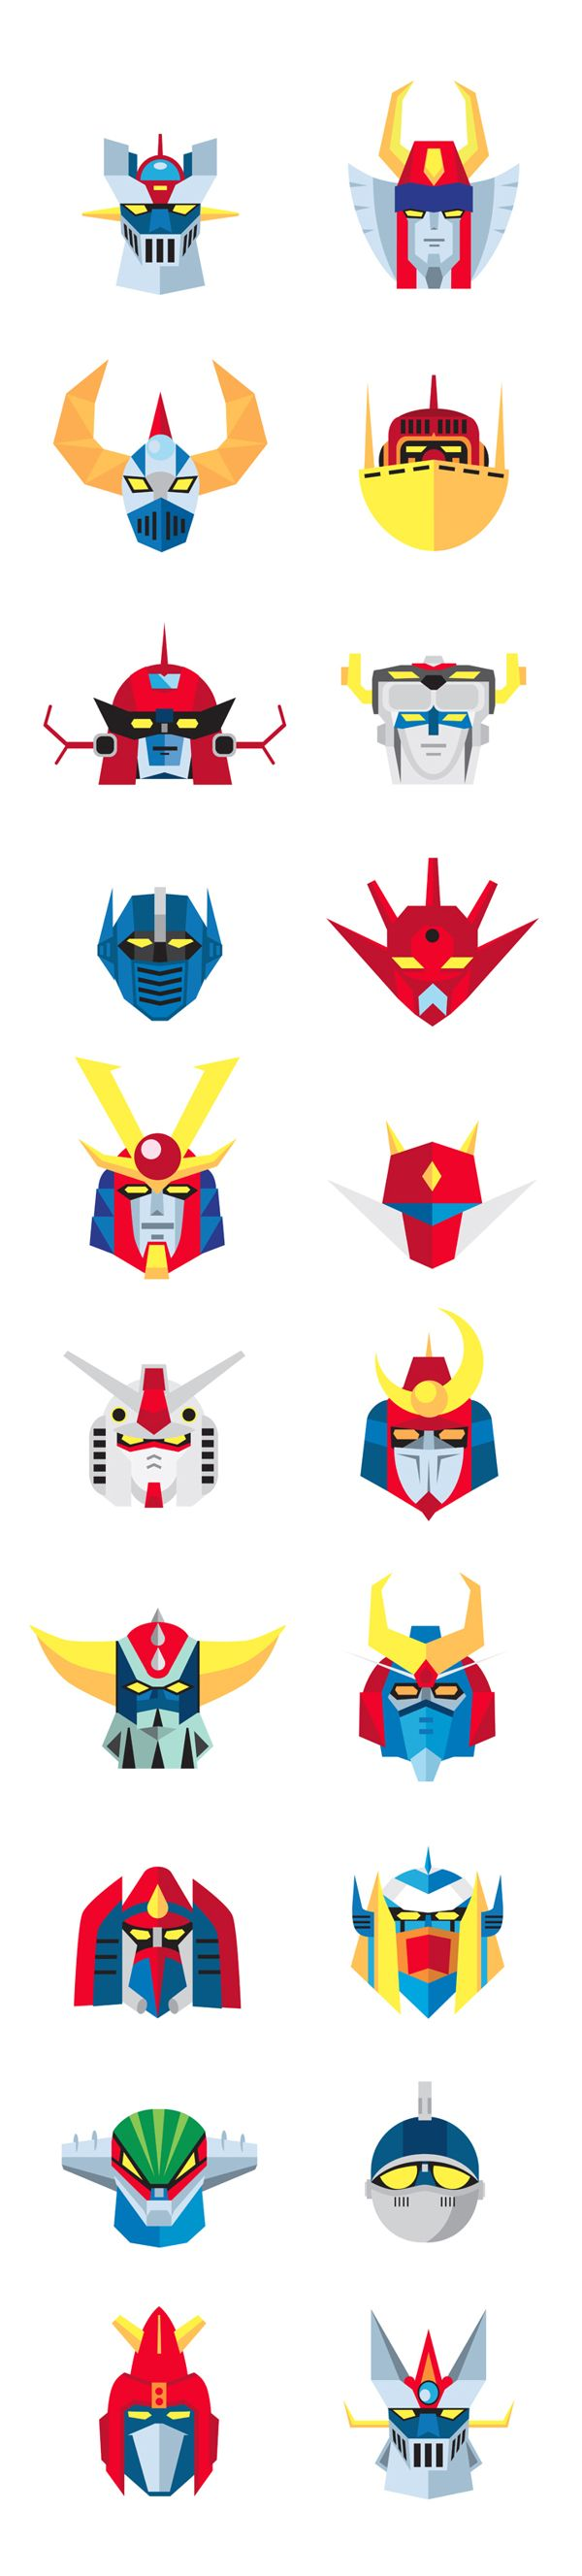 Old School Japanese ROBOTS by danilo agutoli, via Behance